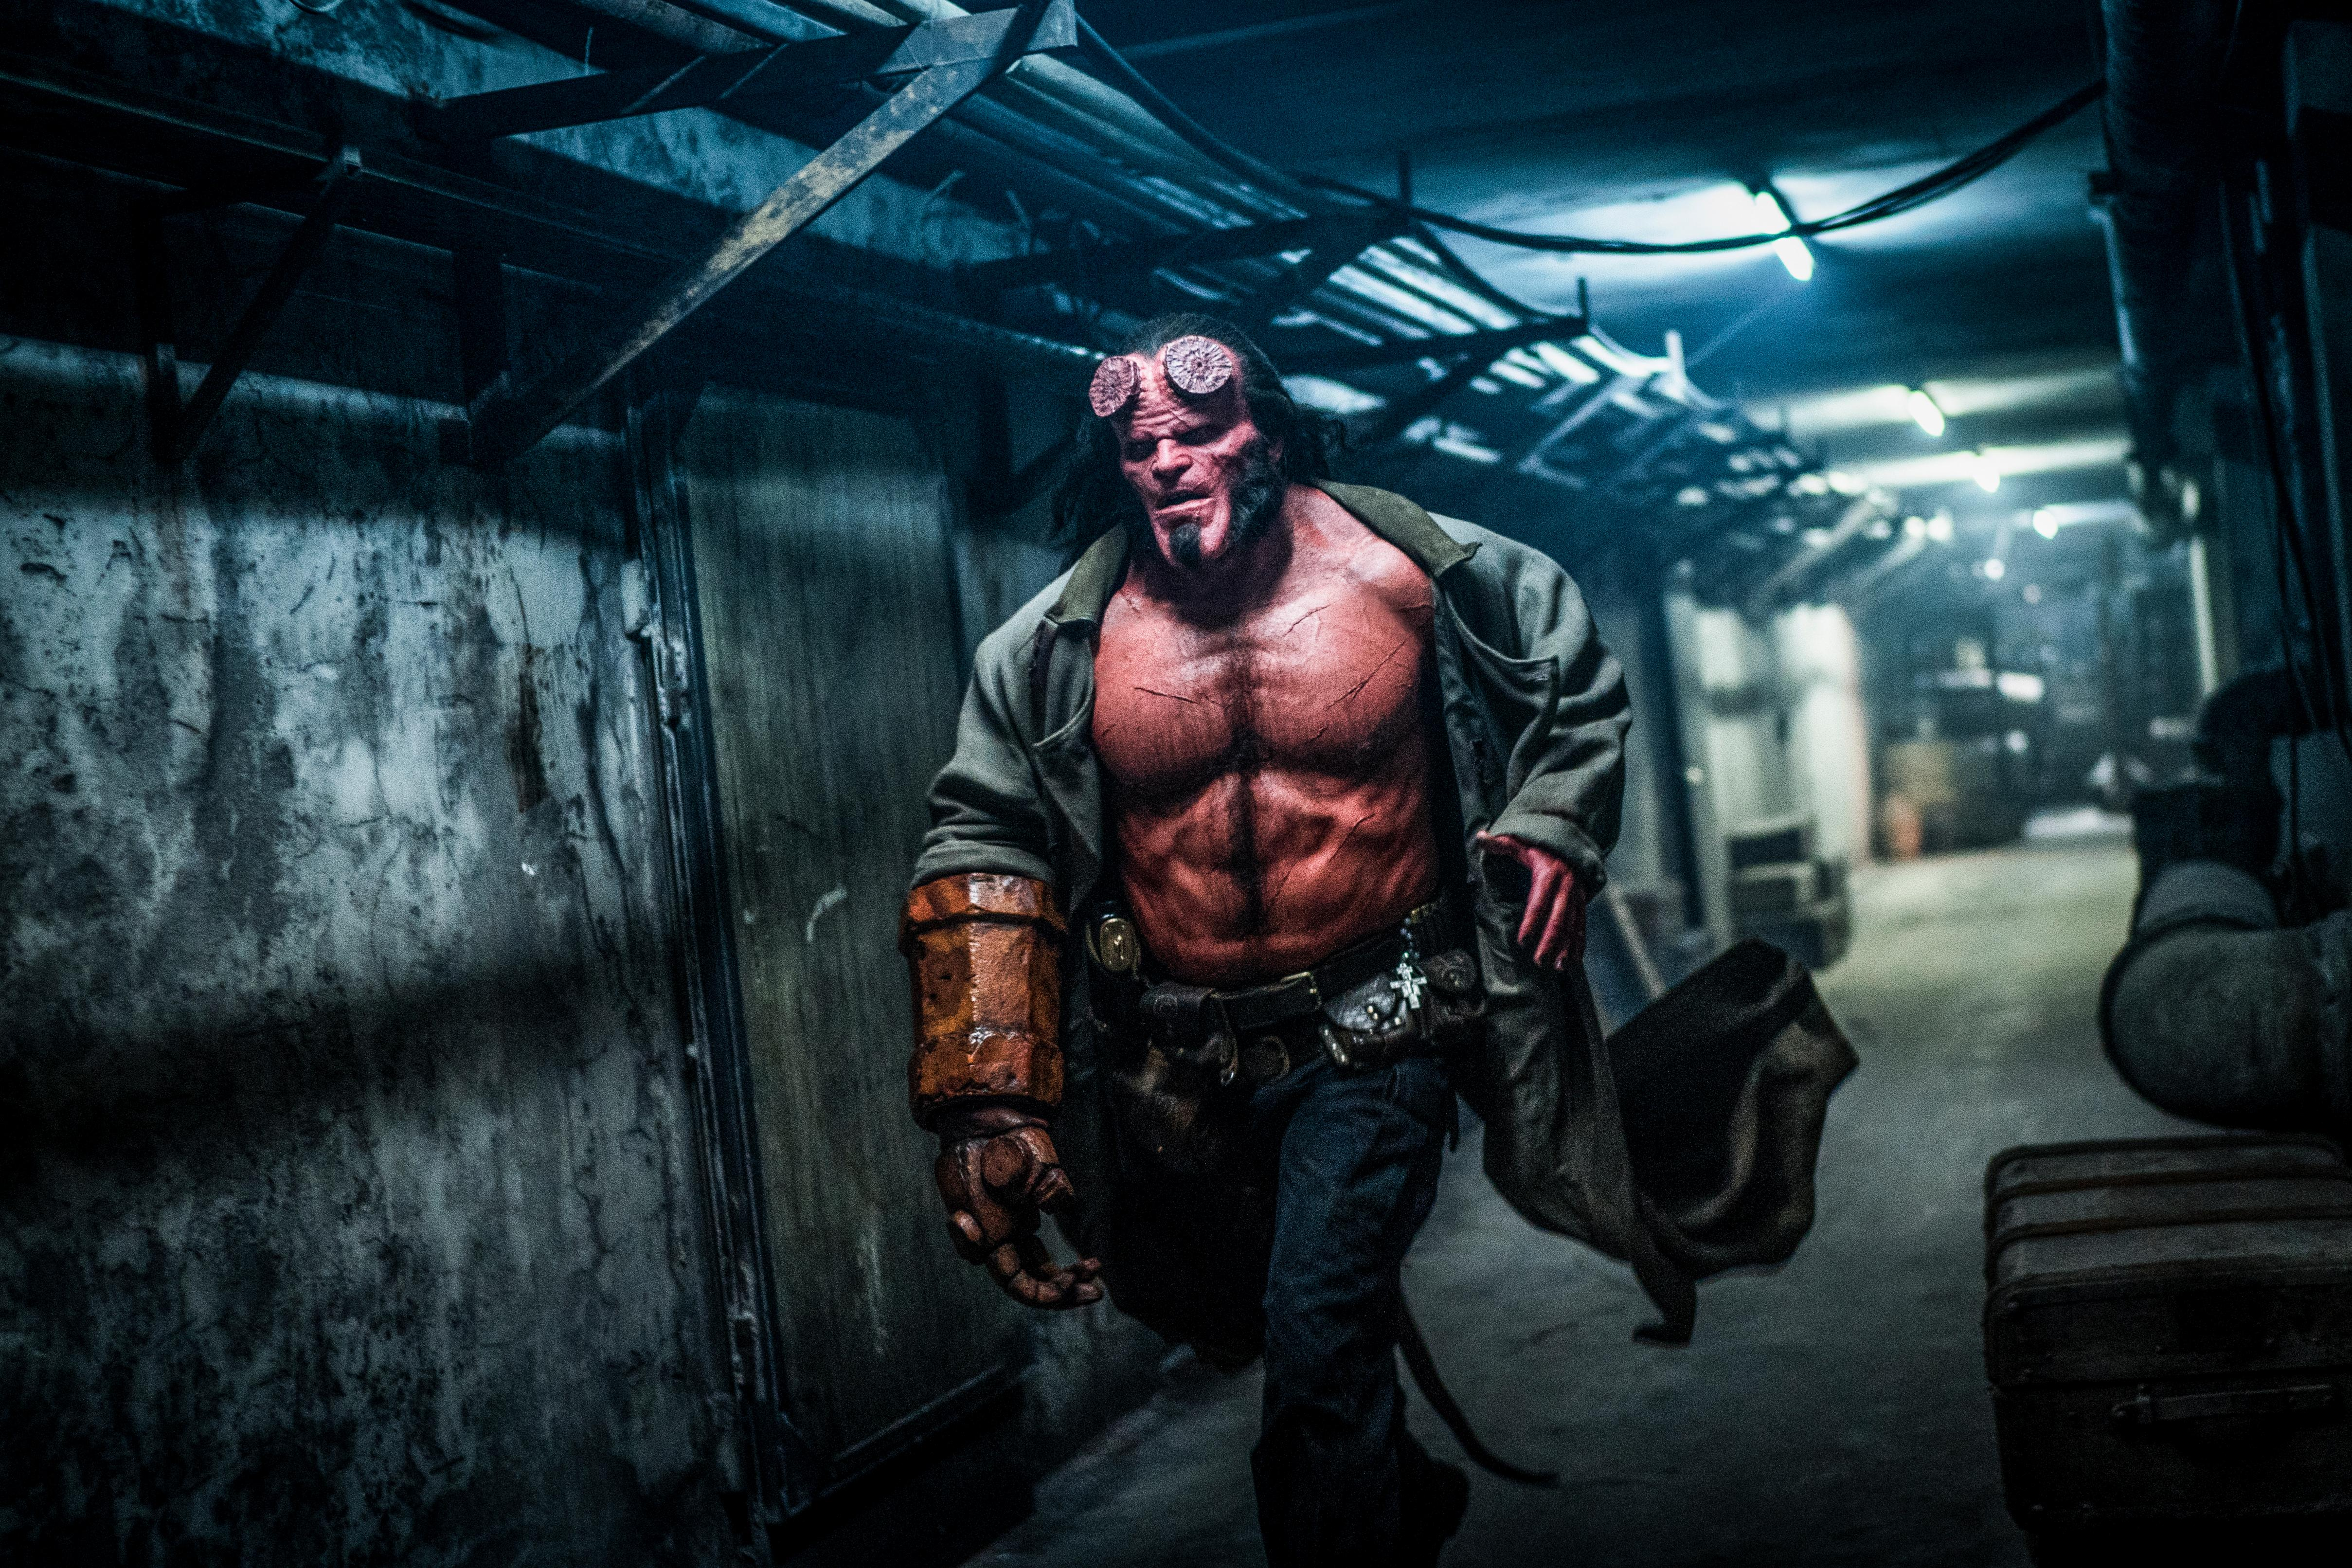 David Harbour as 'Hellboy' in HELLBOY. (Photo: Mark Rogers, Lionsgate)